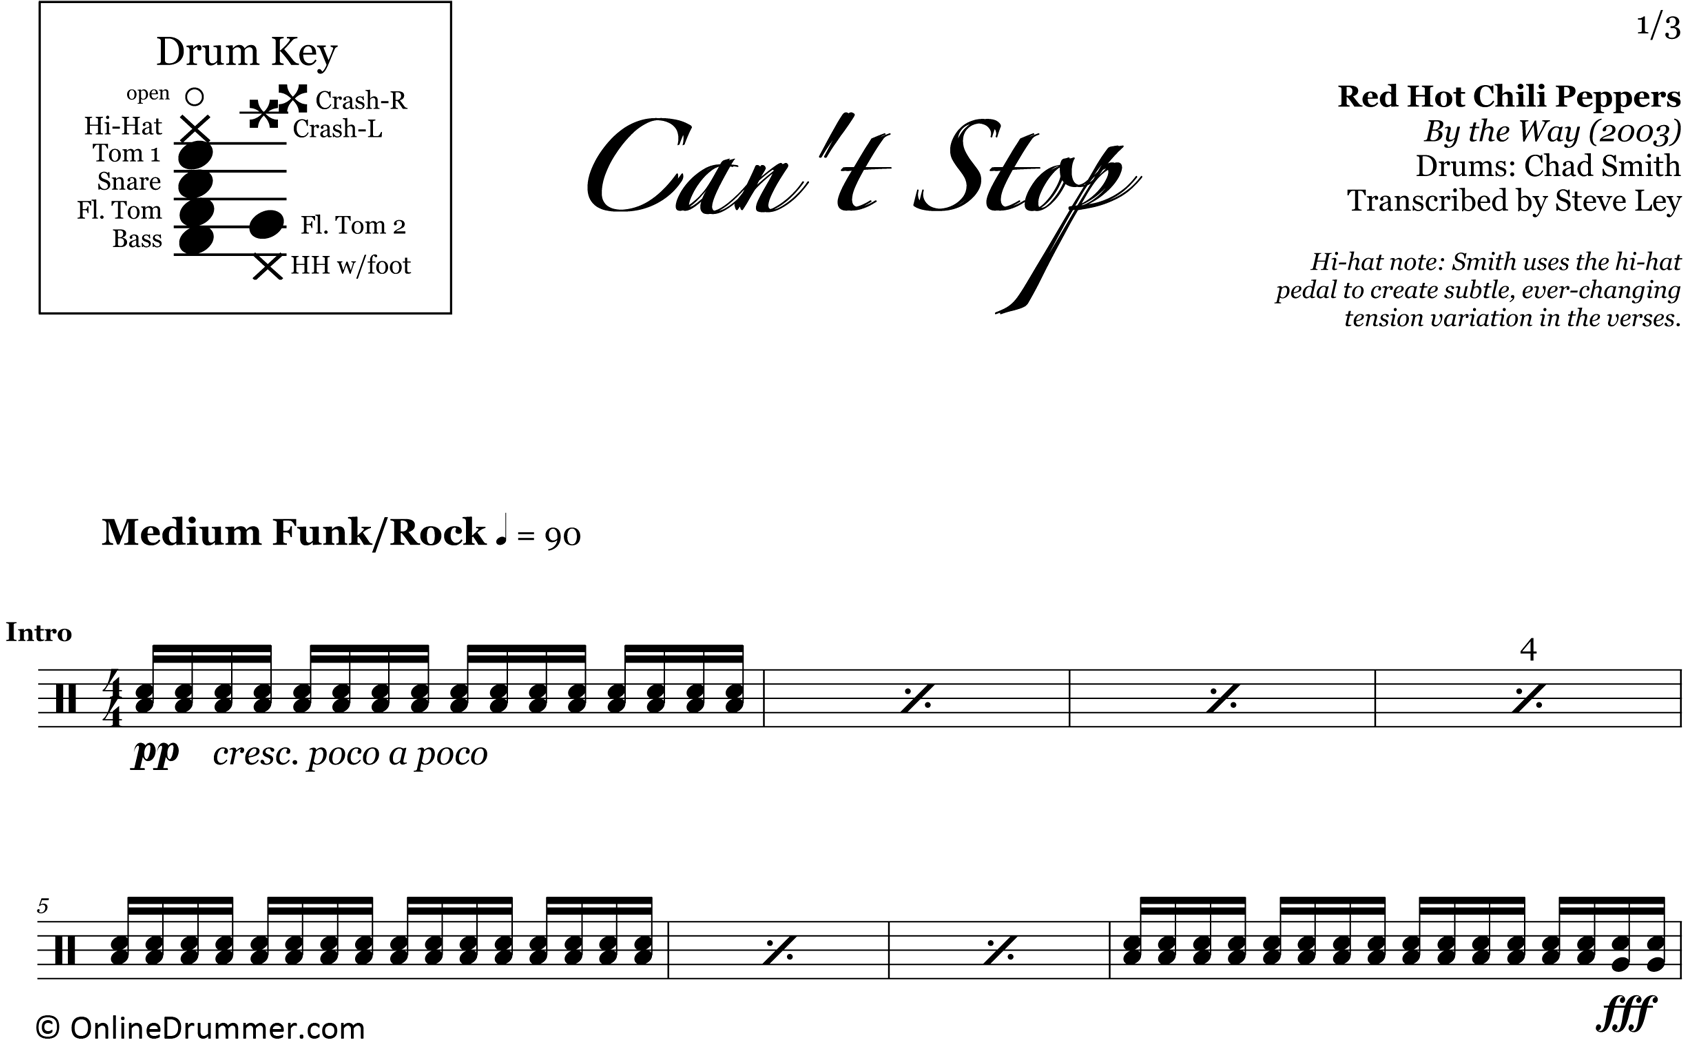 Can't Stop - Red Hot Chili Peppers - Drum Sheet Music